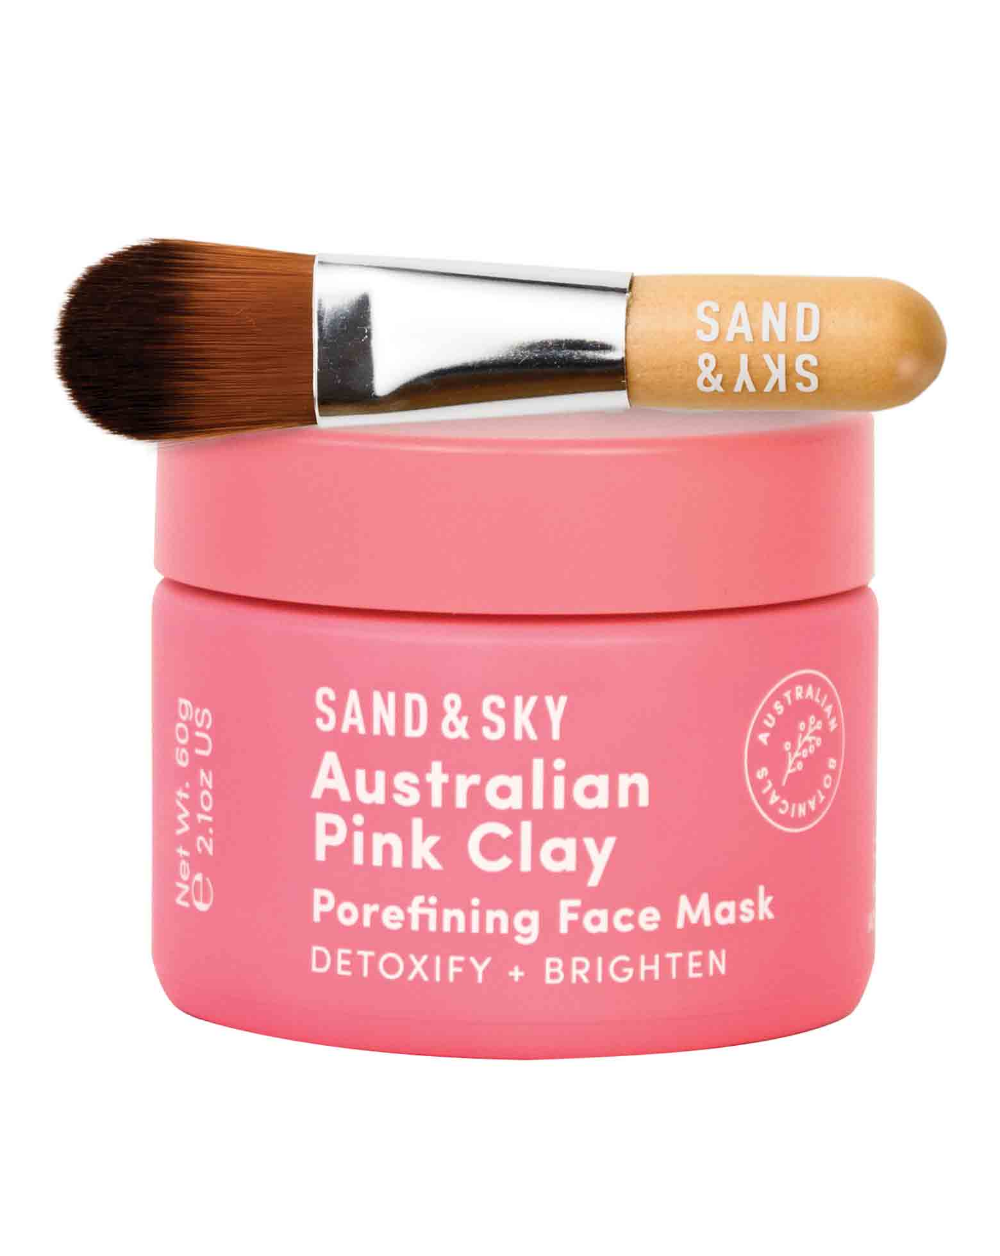 Sand&Sky Brilliant Skin Purifying Pink Clay Mask in 2020